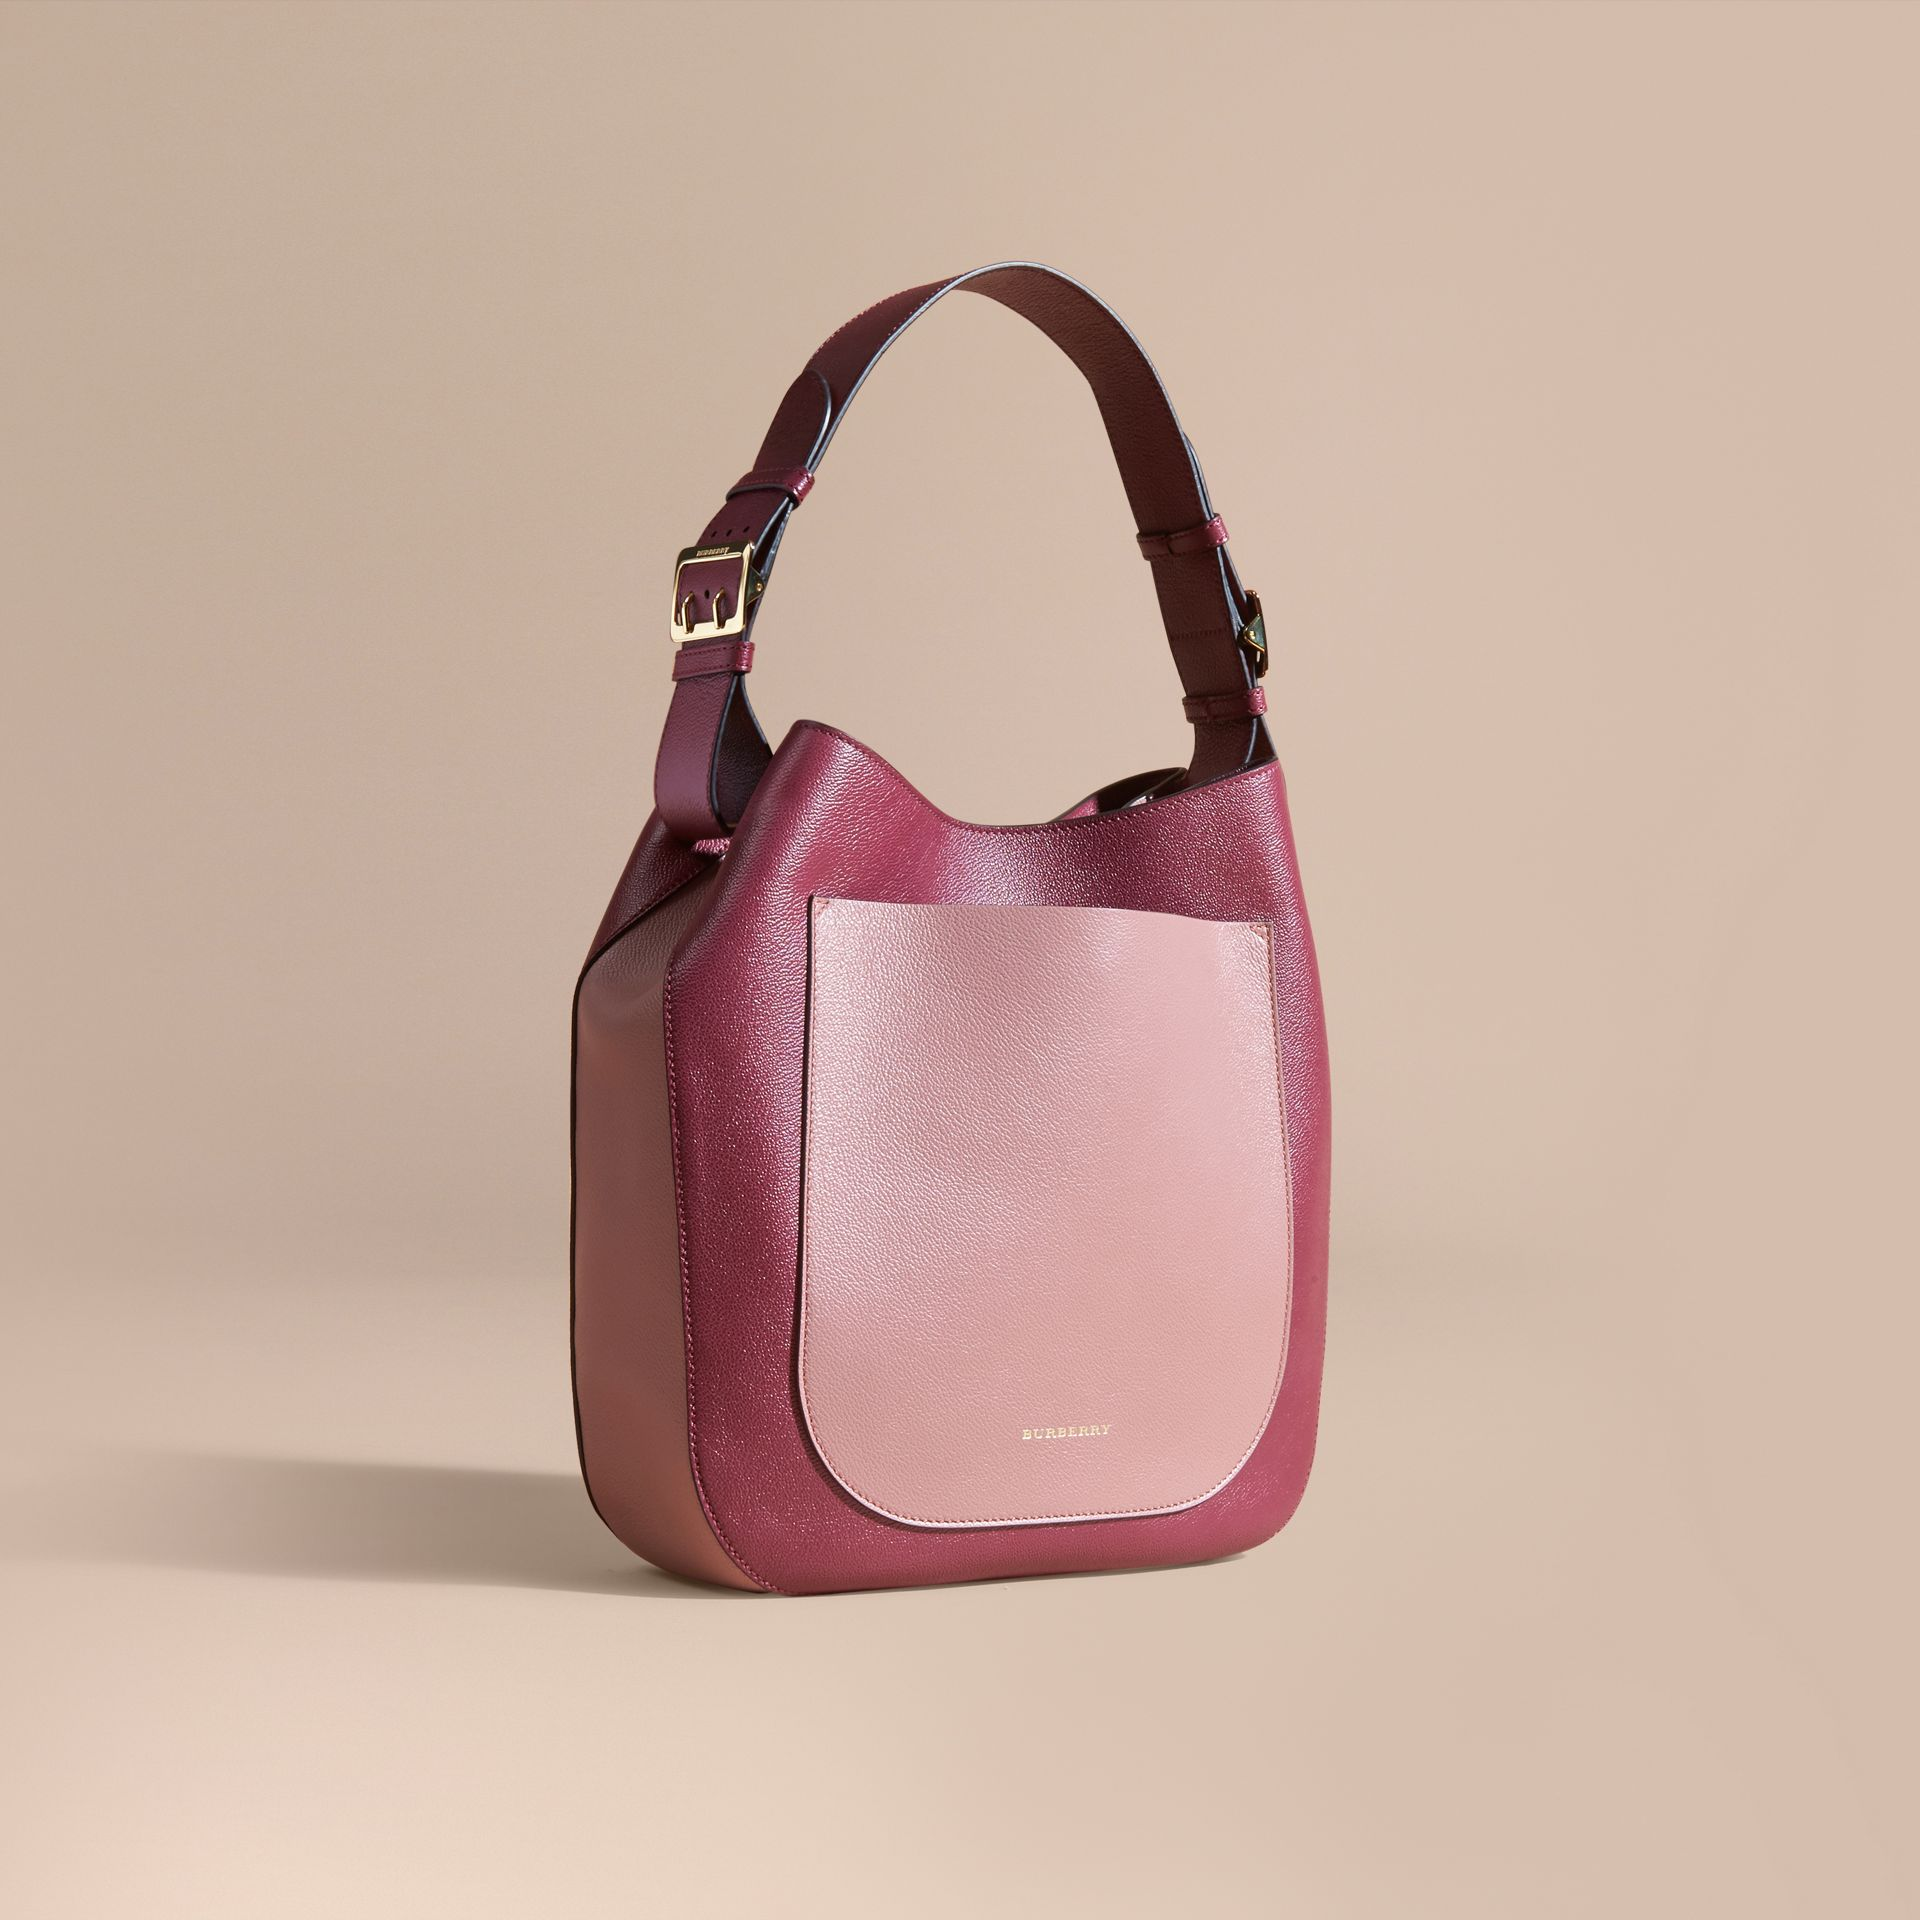 Textured Leather Shoulder Bag in Dark Plum/ Dusty Pink - gallery image 1